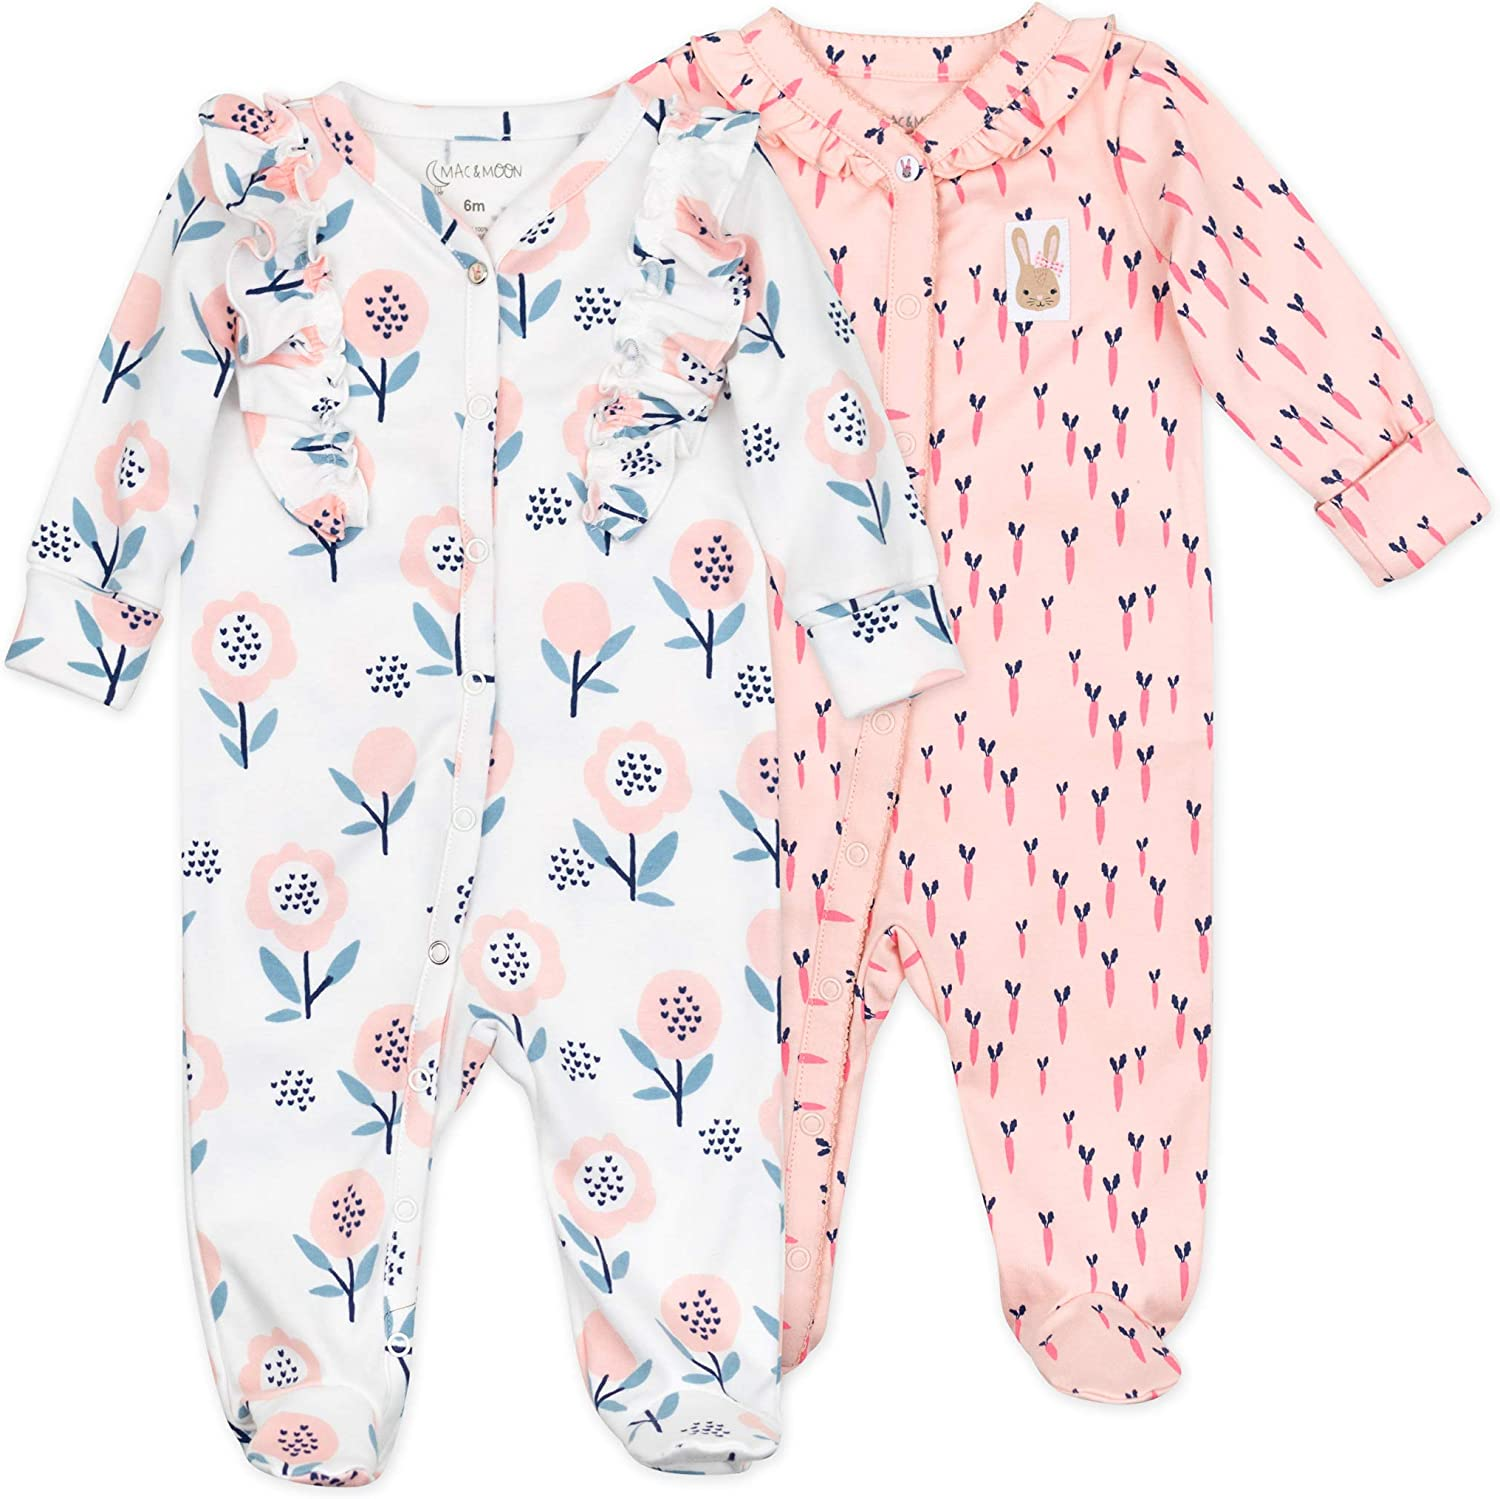 Organic Cotton 2-Pack Footed Sleep Play Brand Cheap Sale Venue ! Super beauty product restock quality top! Moon Mac Bo Baby By